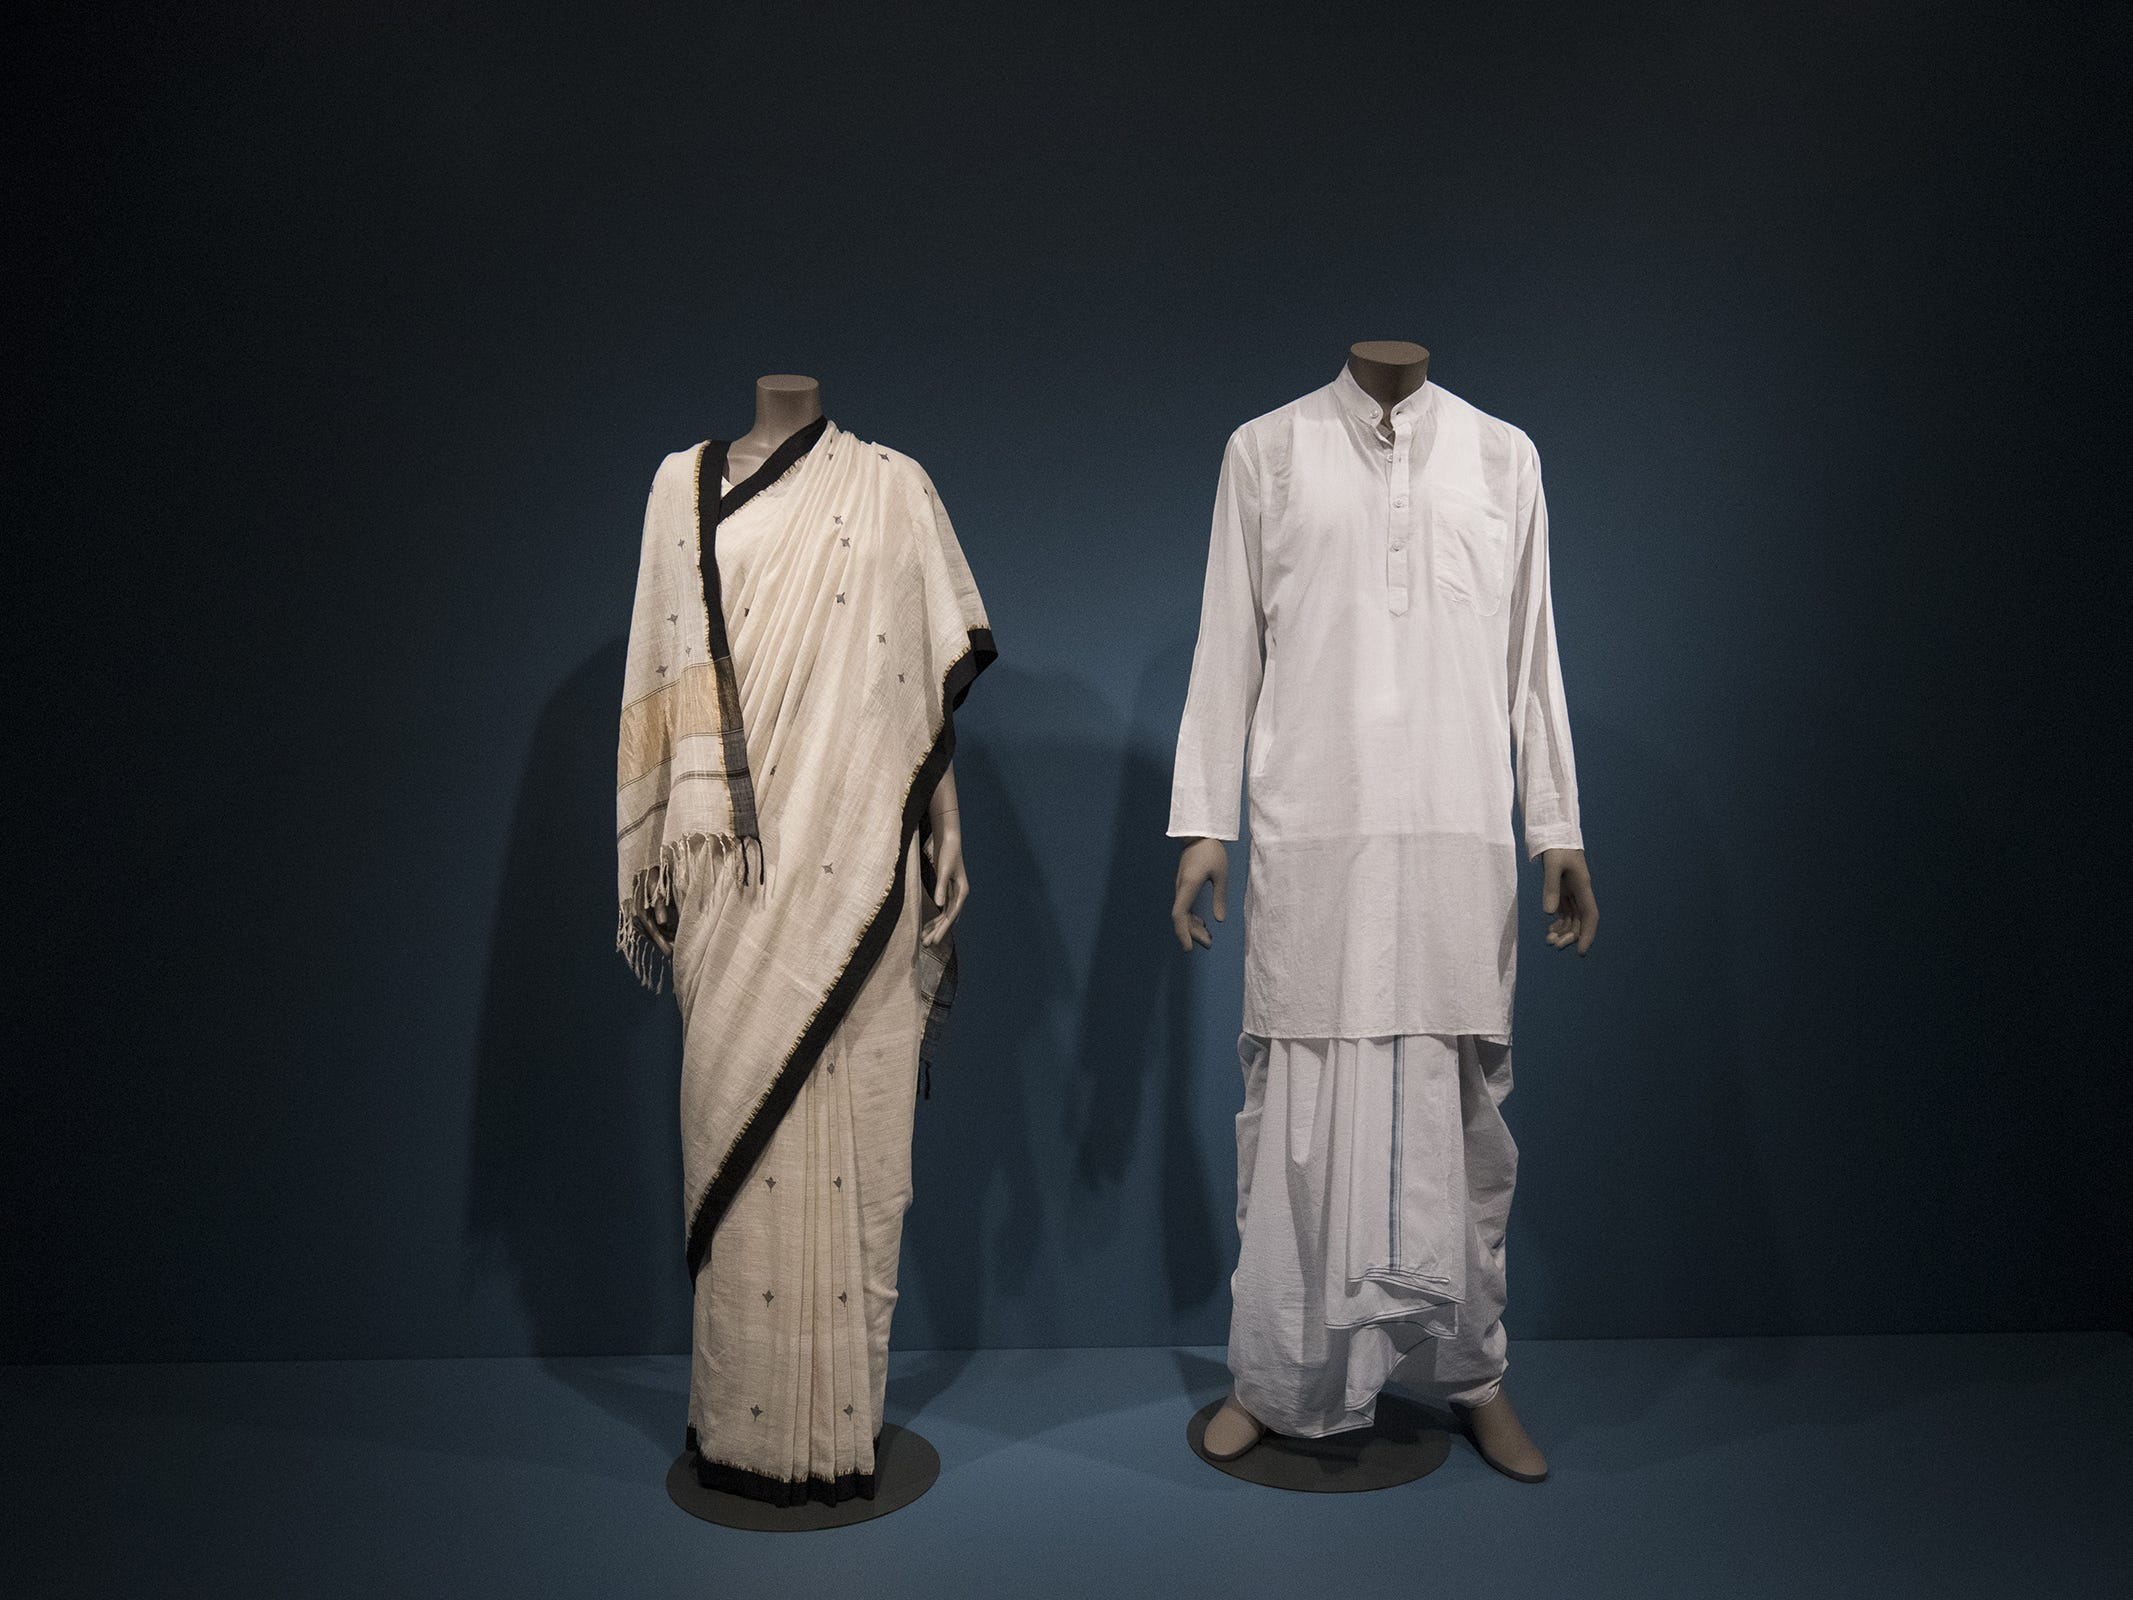 This khadi sari and kurta are included in the new Fabrics of India exhibit at the Cincinnati Art Museum.